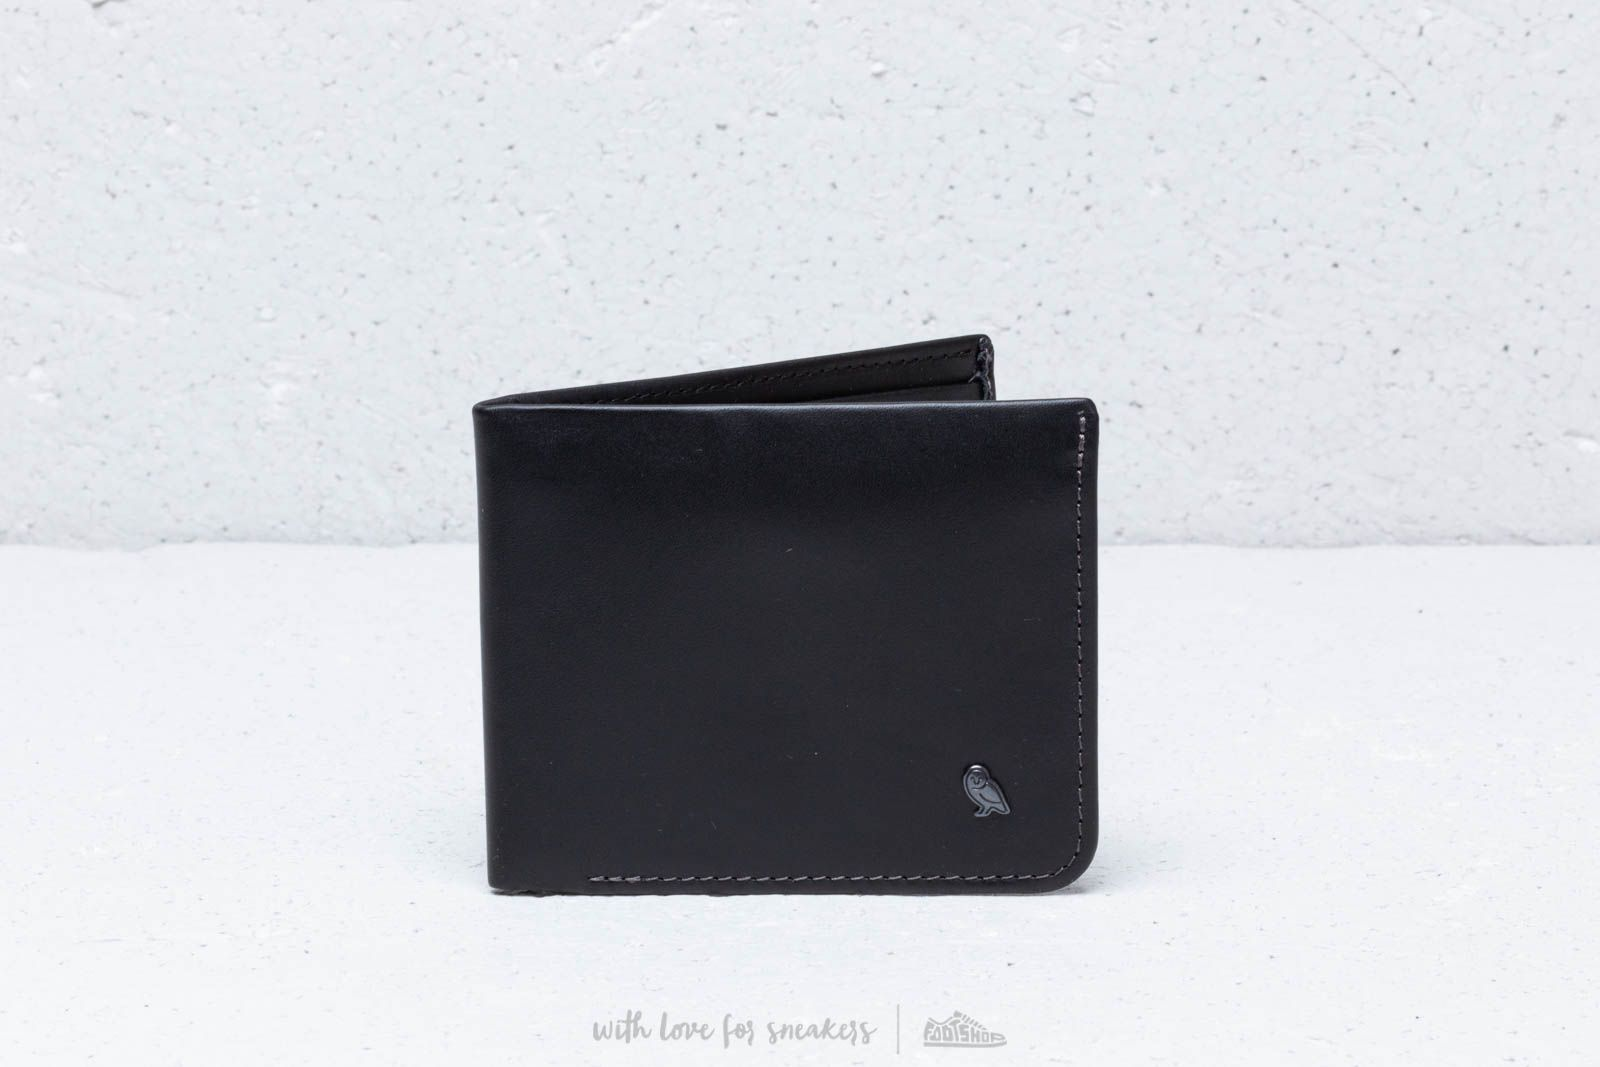 Bellroy Hide & Seek RFID